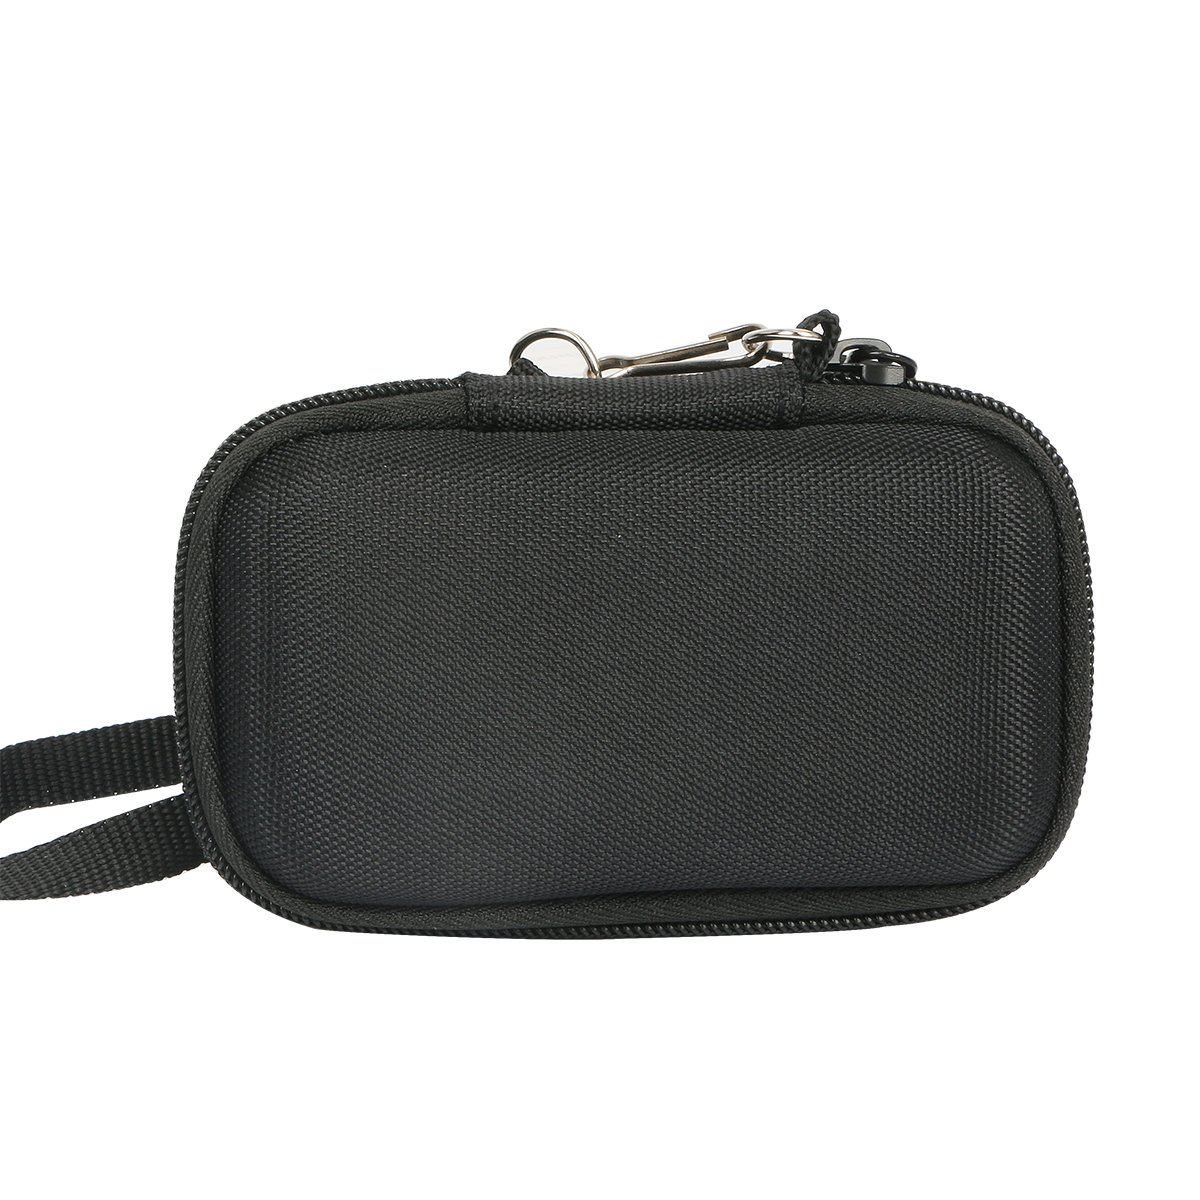 Hard Travel Case for WD My Passport SSD Portable Storage 1TB 2TB 3TB 4TB by co2CREA (Size 2) by Co2Crea (Image #4)